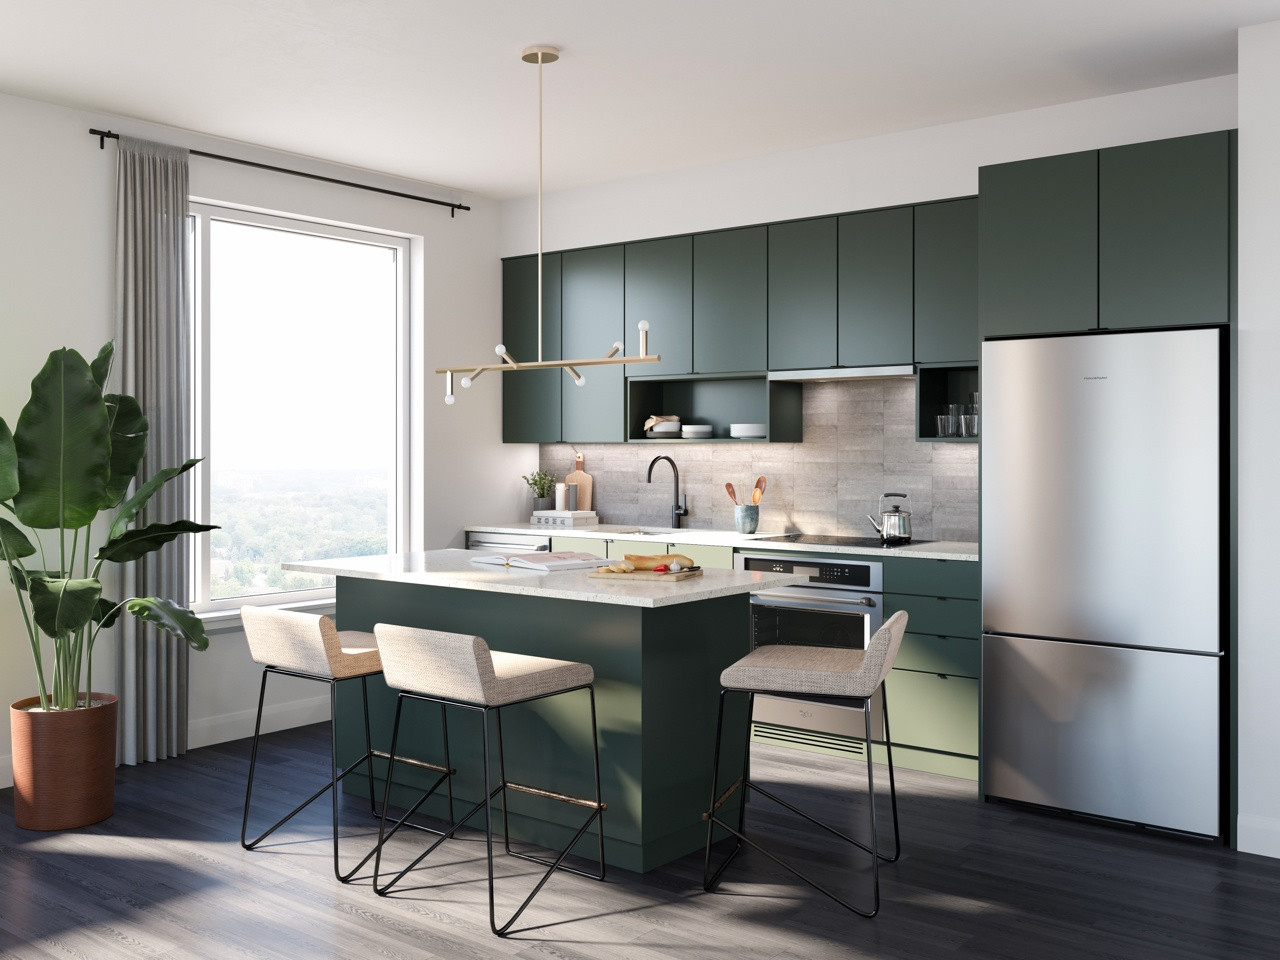 UpperWestSideCondos_Kitchen.jpg